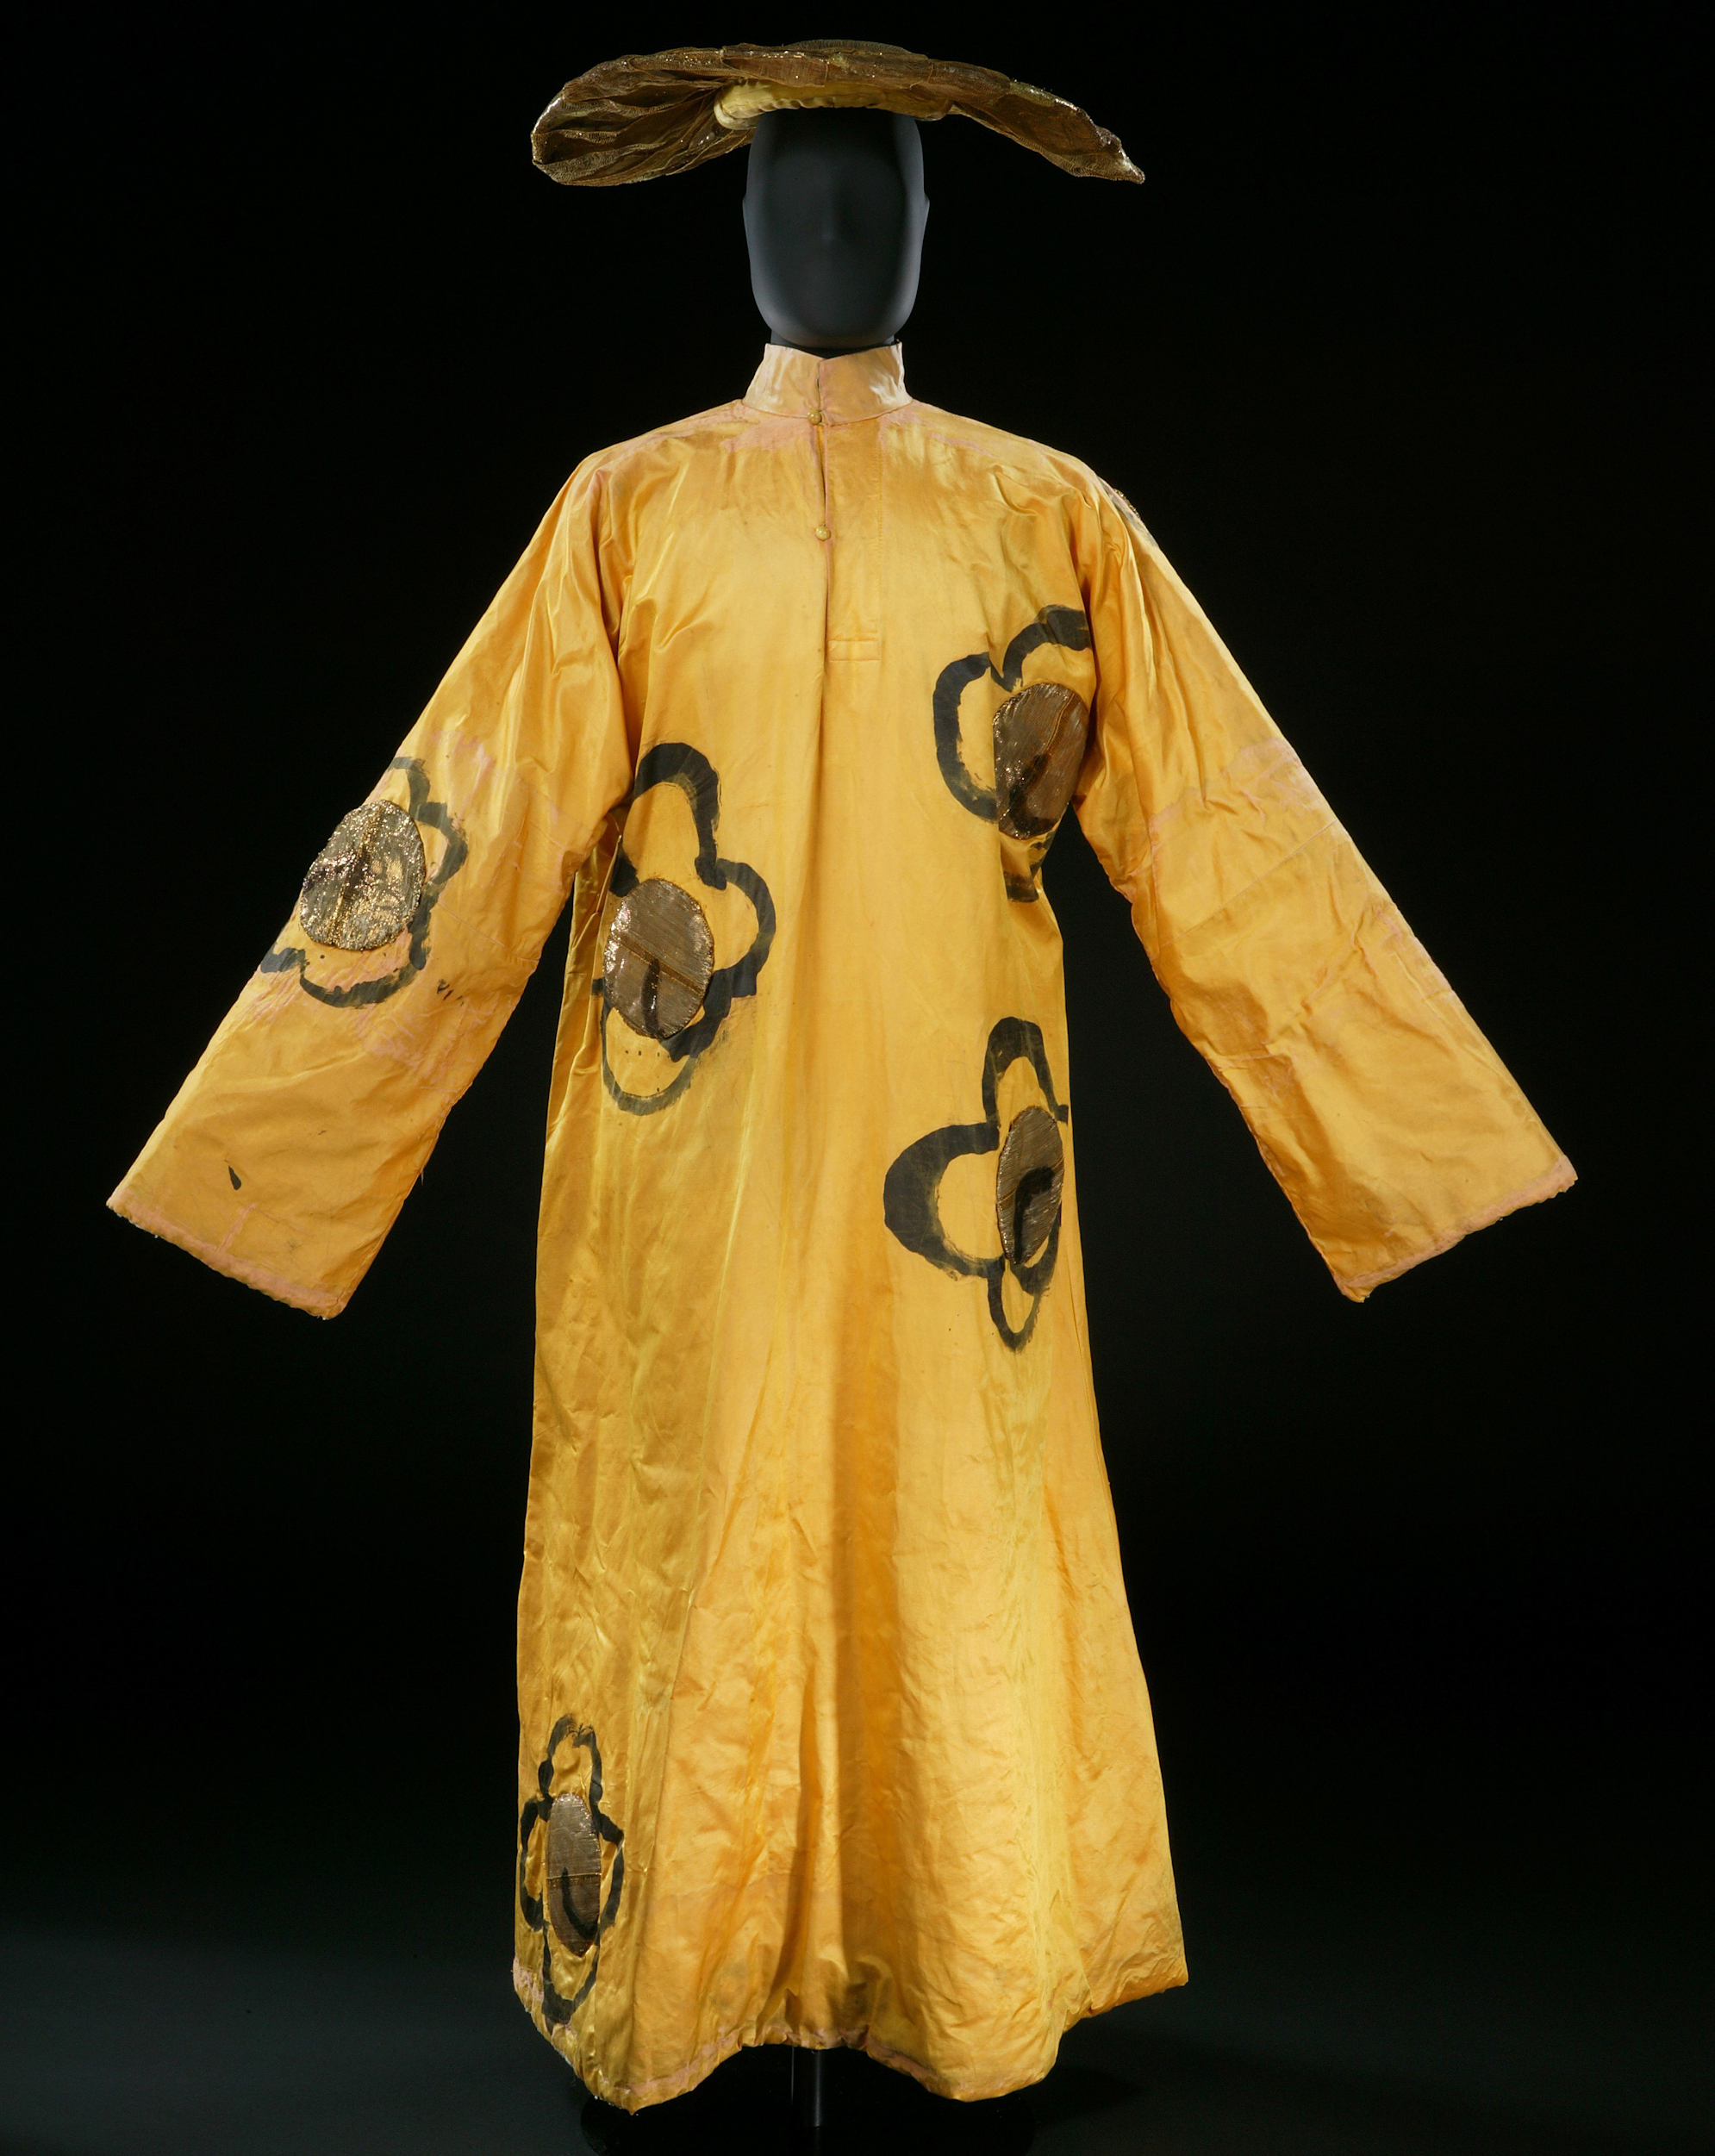 Henri Matisse's satin costume for a dancer in The Song of the Nightingale (1920).